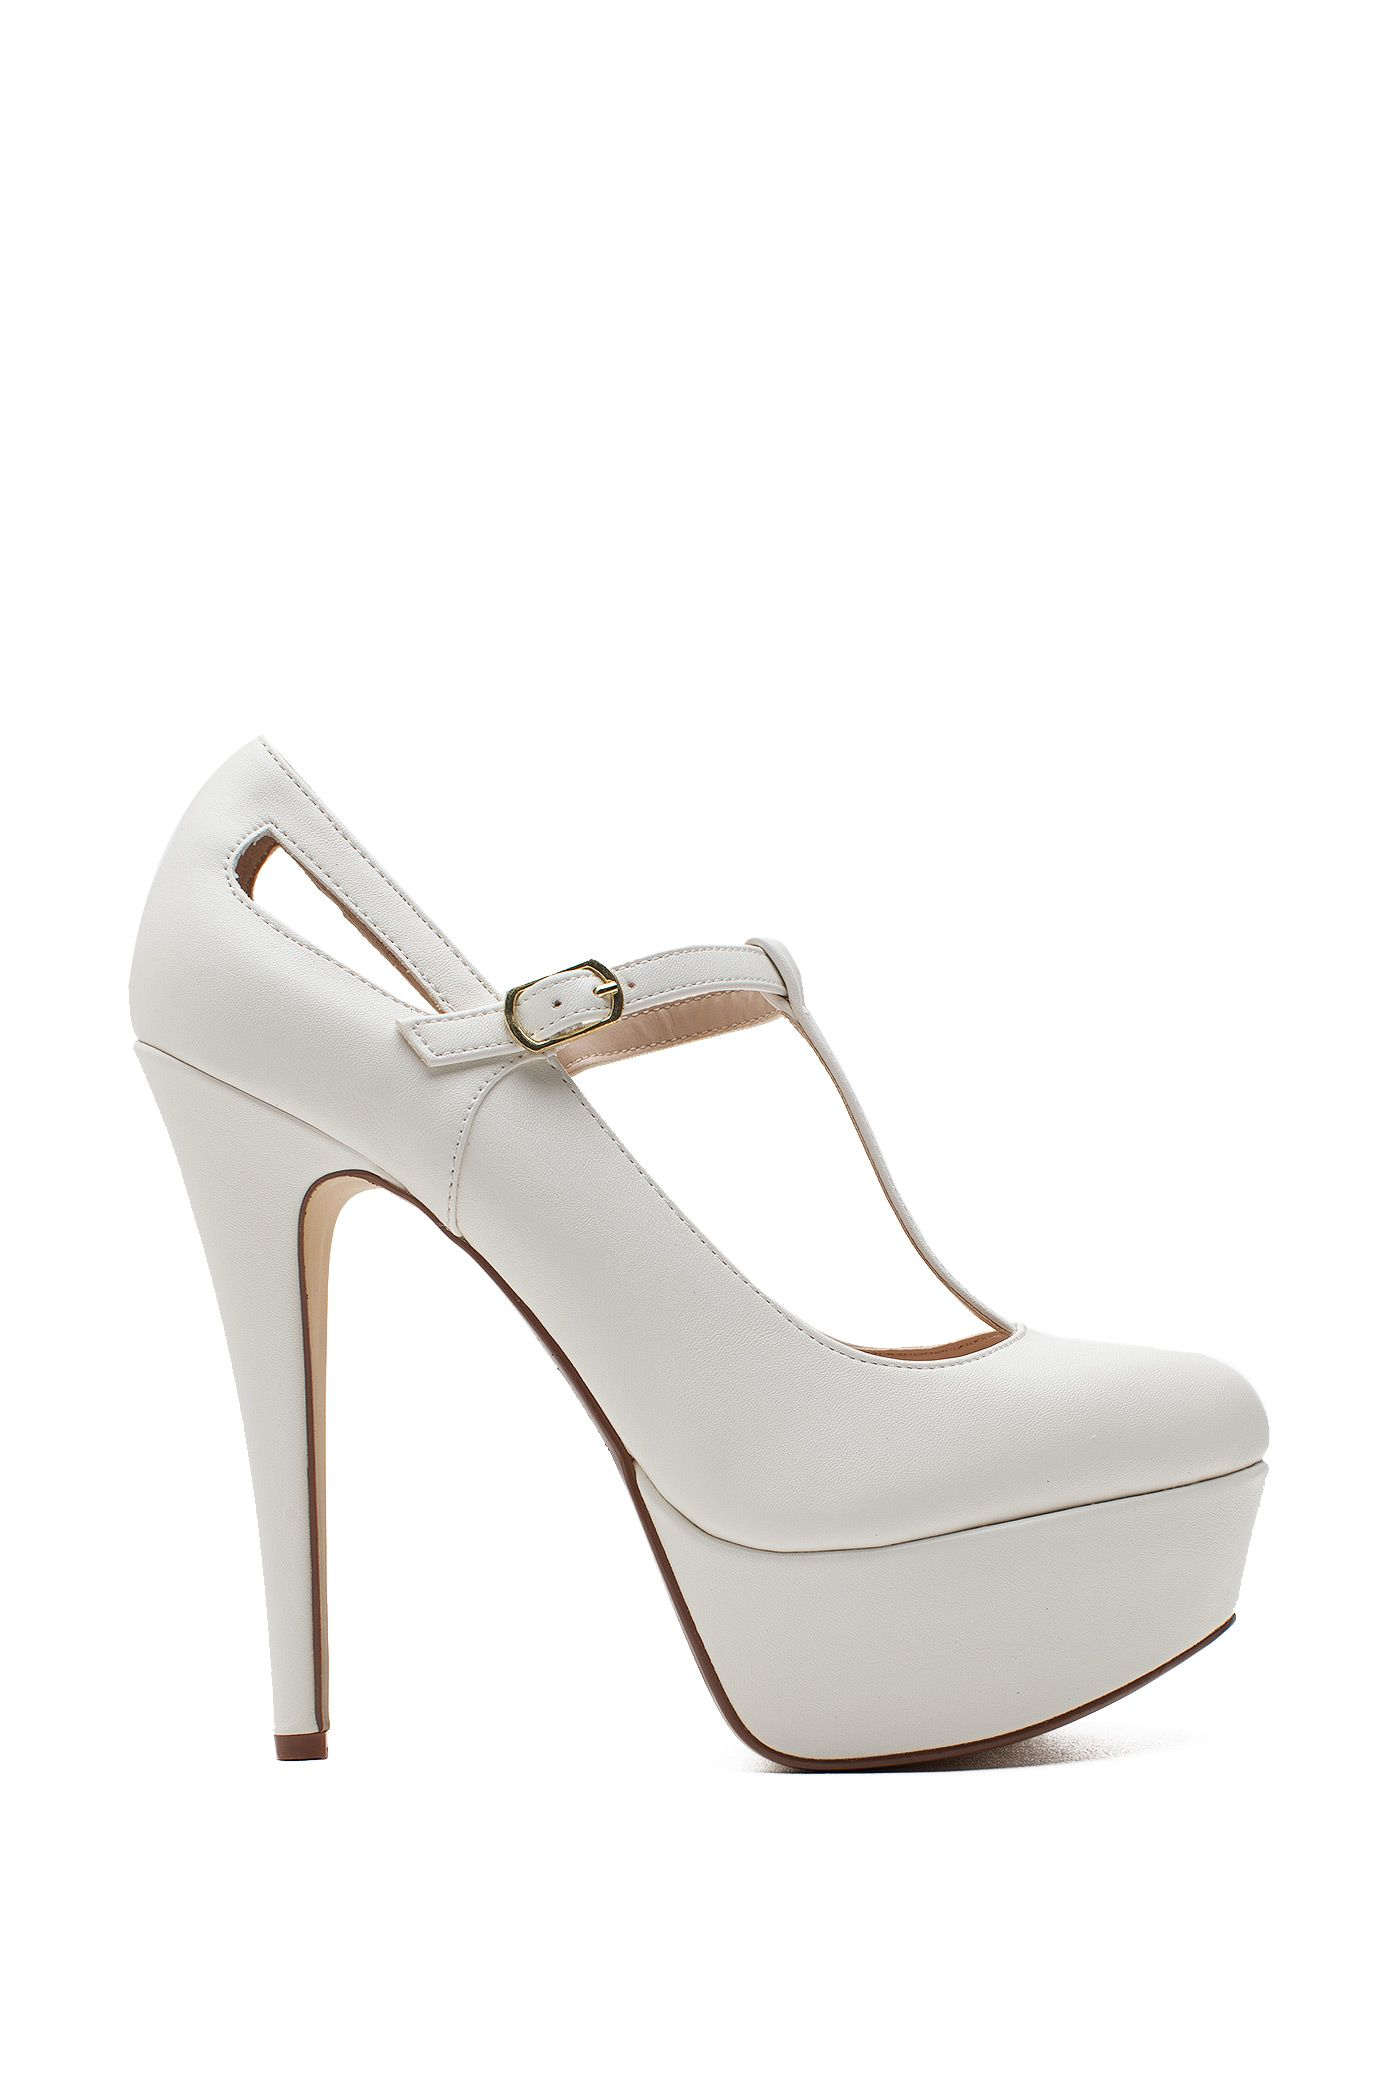 Women's Heels | Realove 64 Ladies Who Lunch Platform | A'GACI